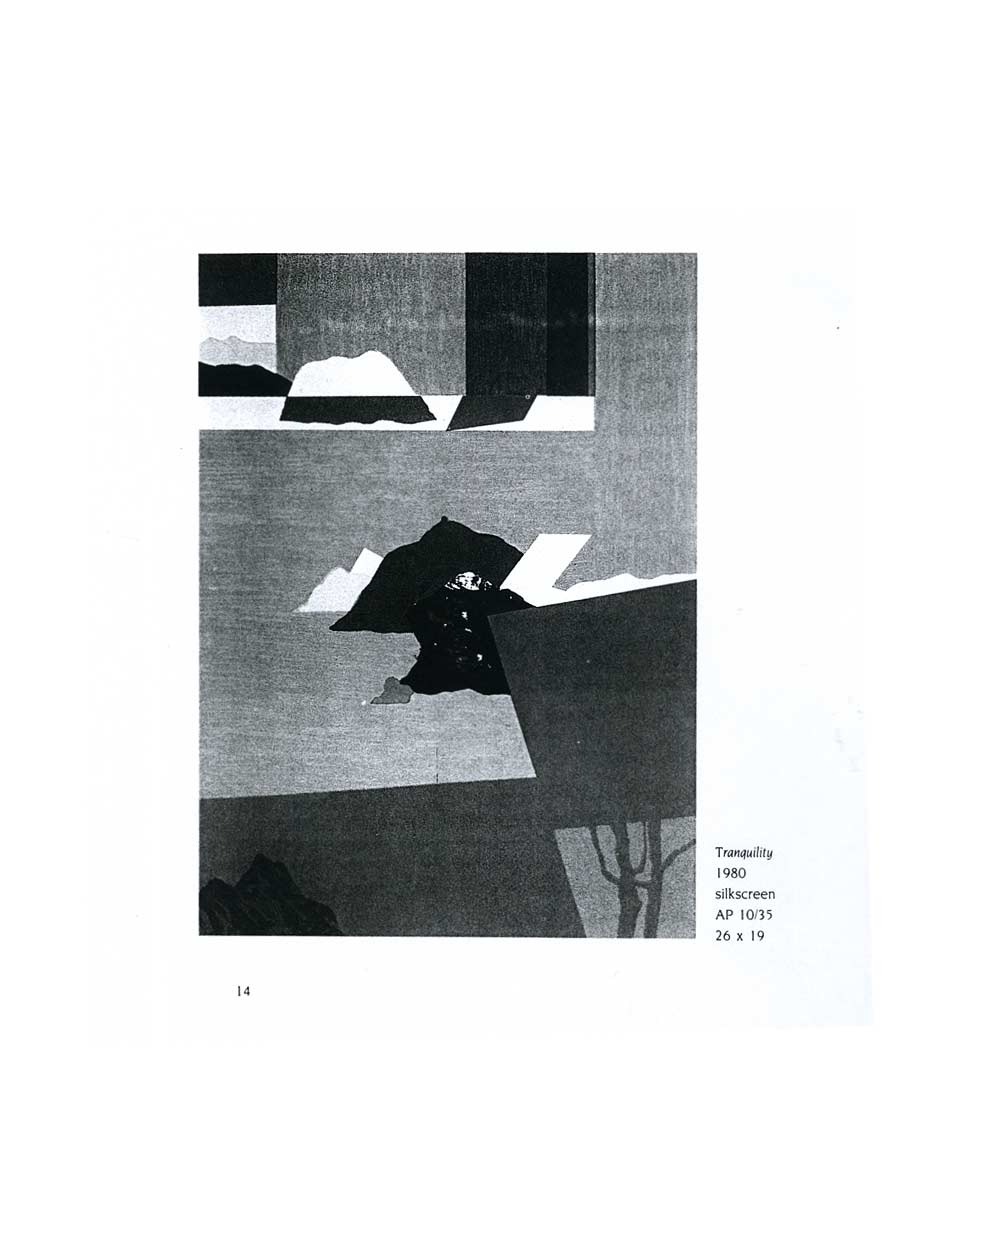 Seong Moy: Color Prints by Tony Vevers, pg 10